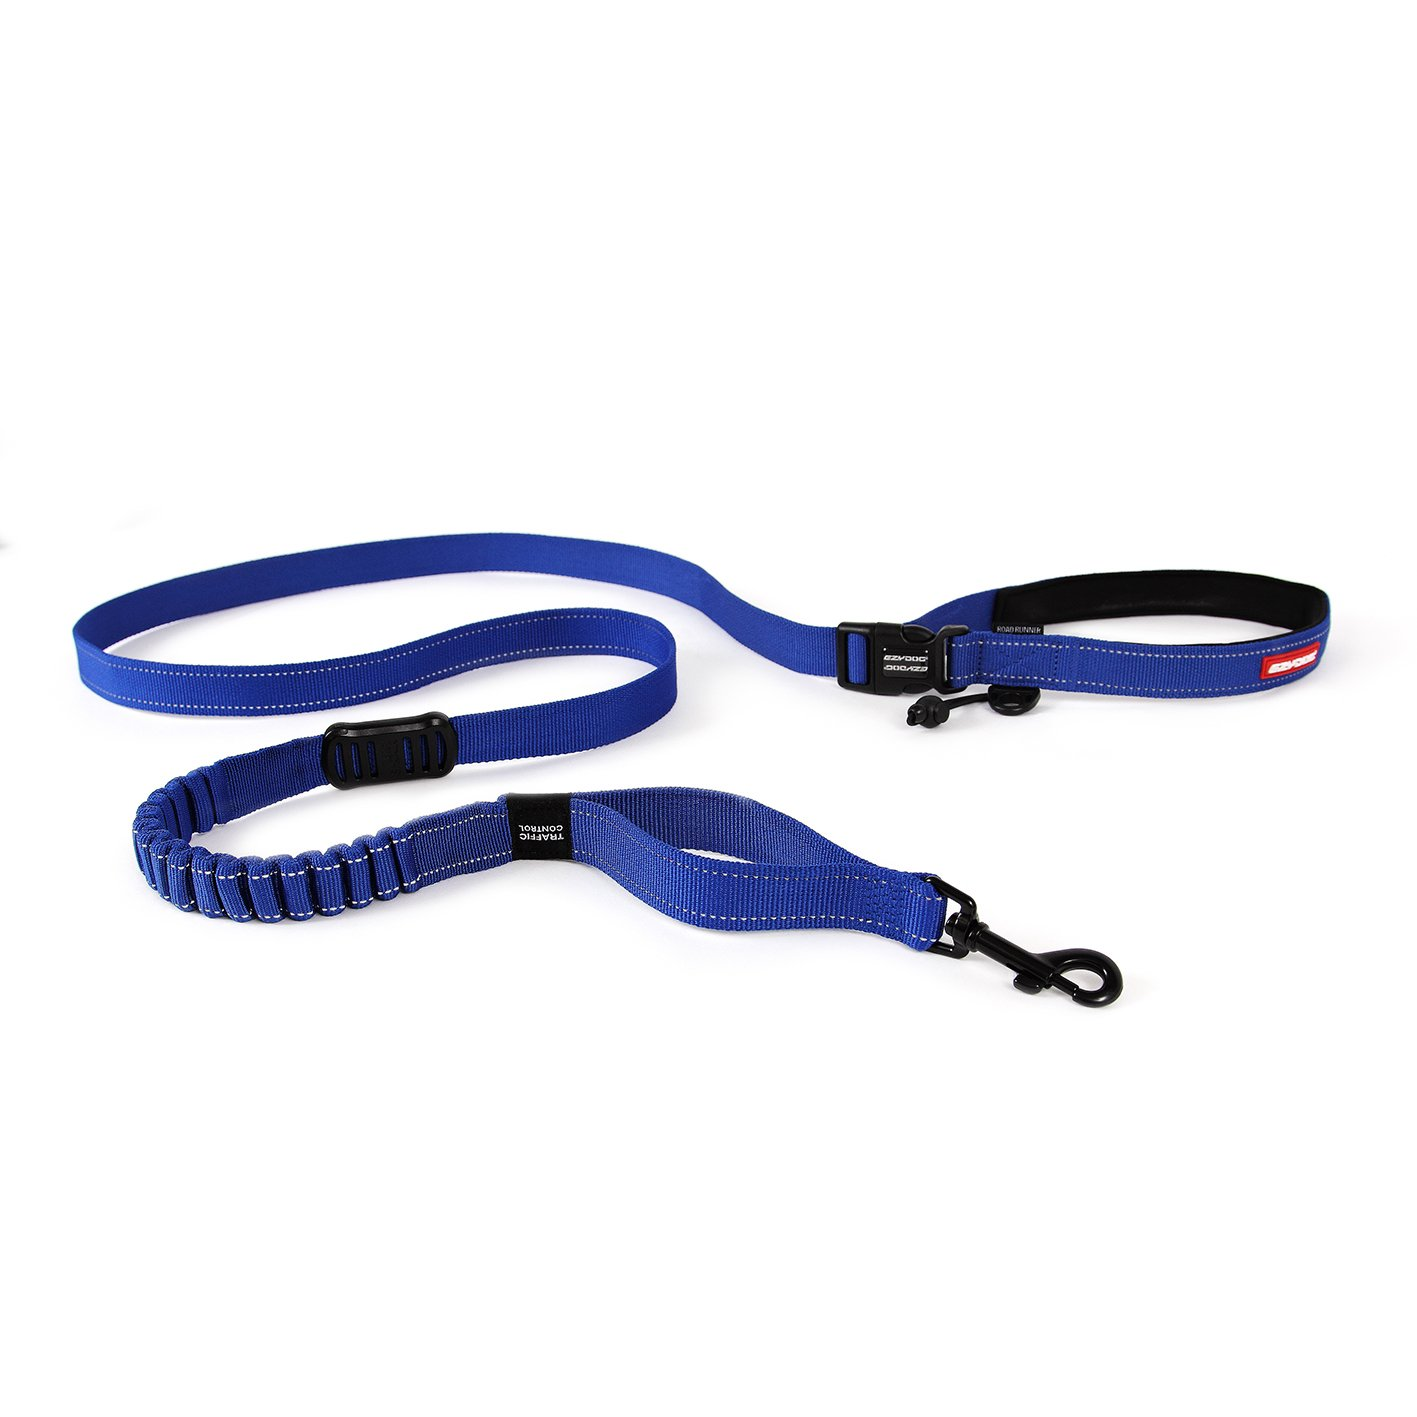 EzyDog Road Runner Best Hands Free Walking, Jogging, and Running Zero Shock Bungee Dog Leash - Reflective Stitching and Adjustable Waist Belt - Provides Superior Comfort, Safety, and Control (Blue)